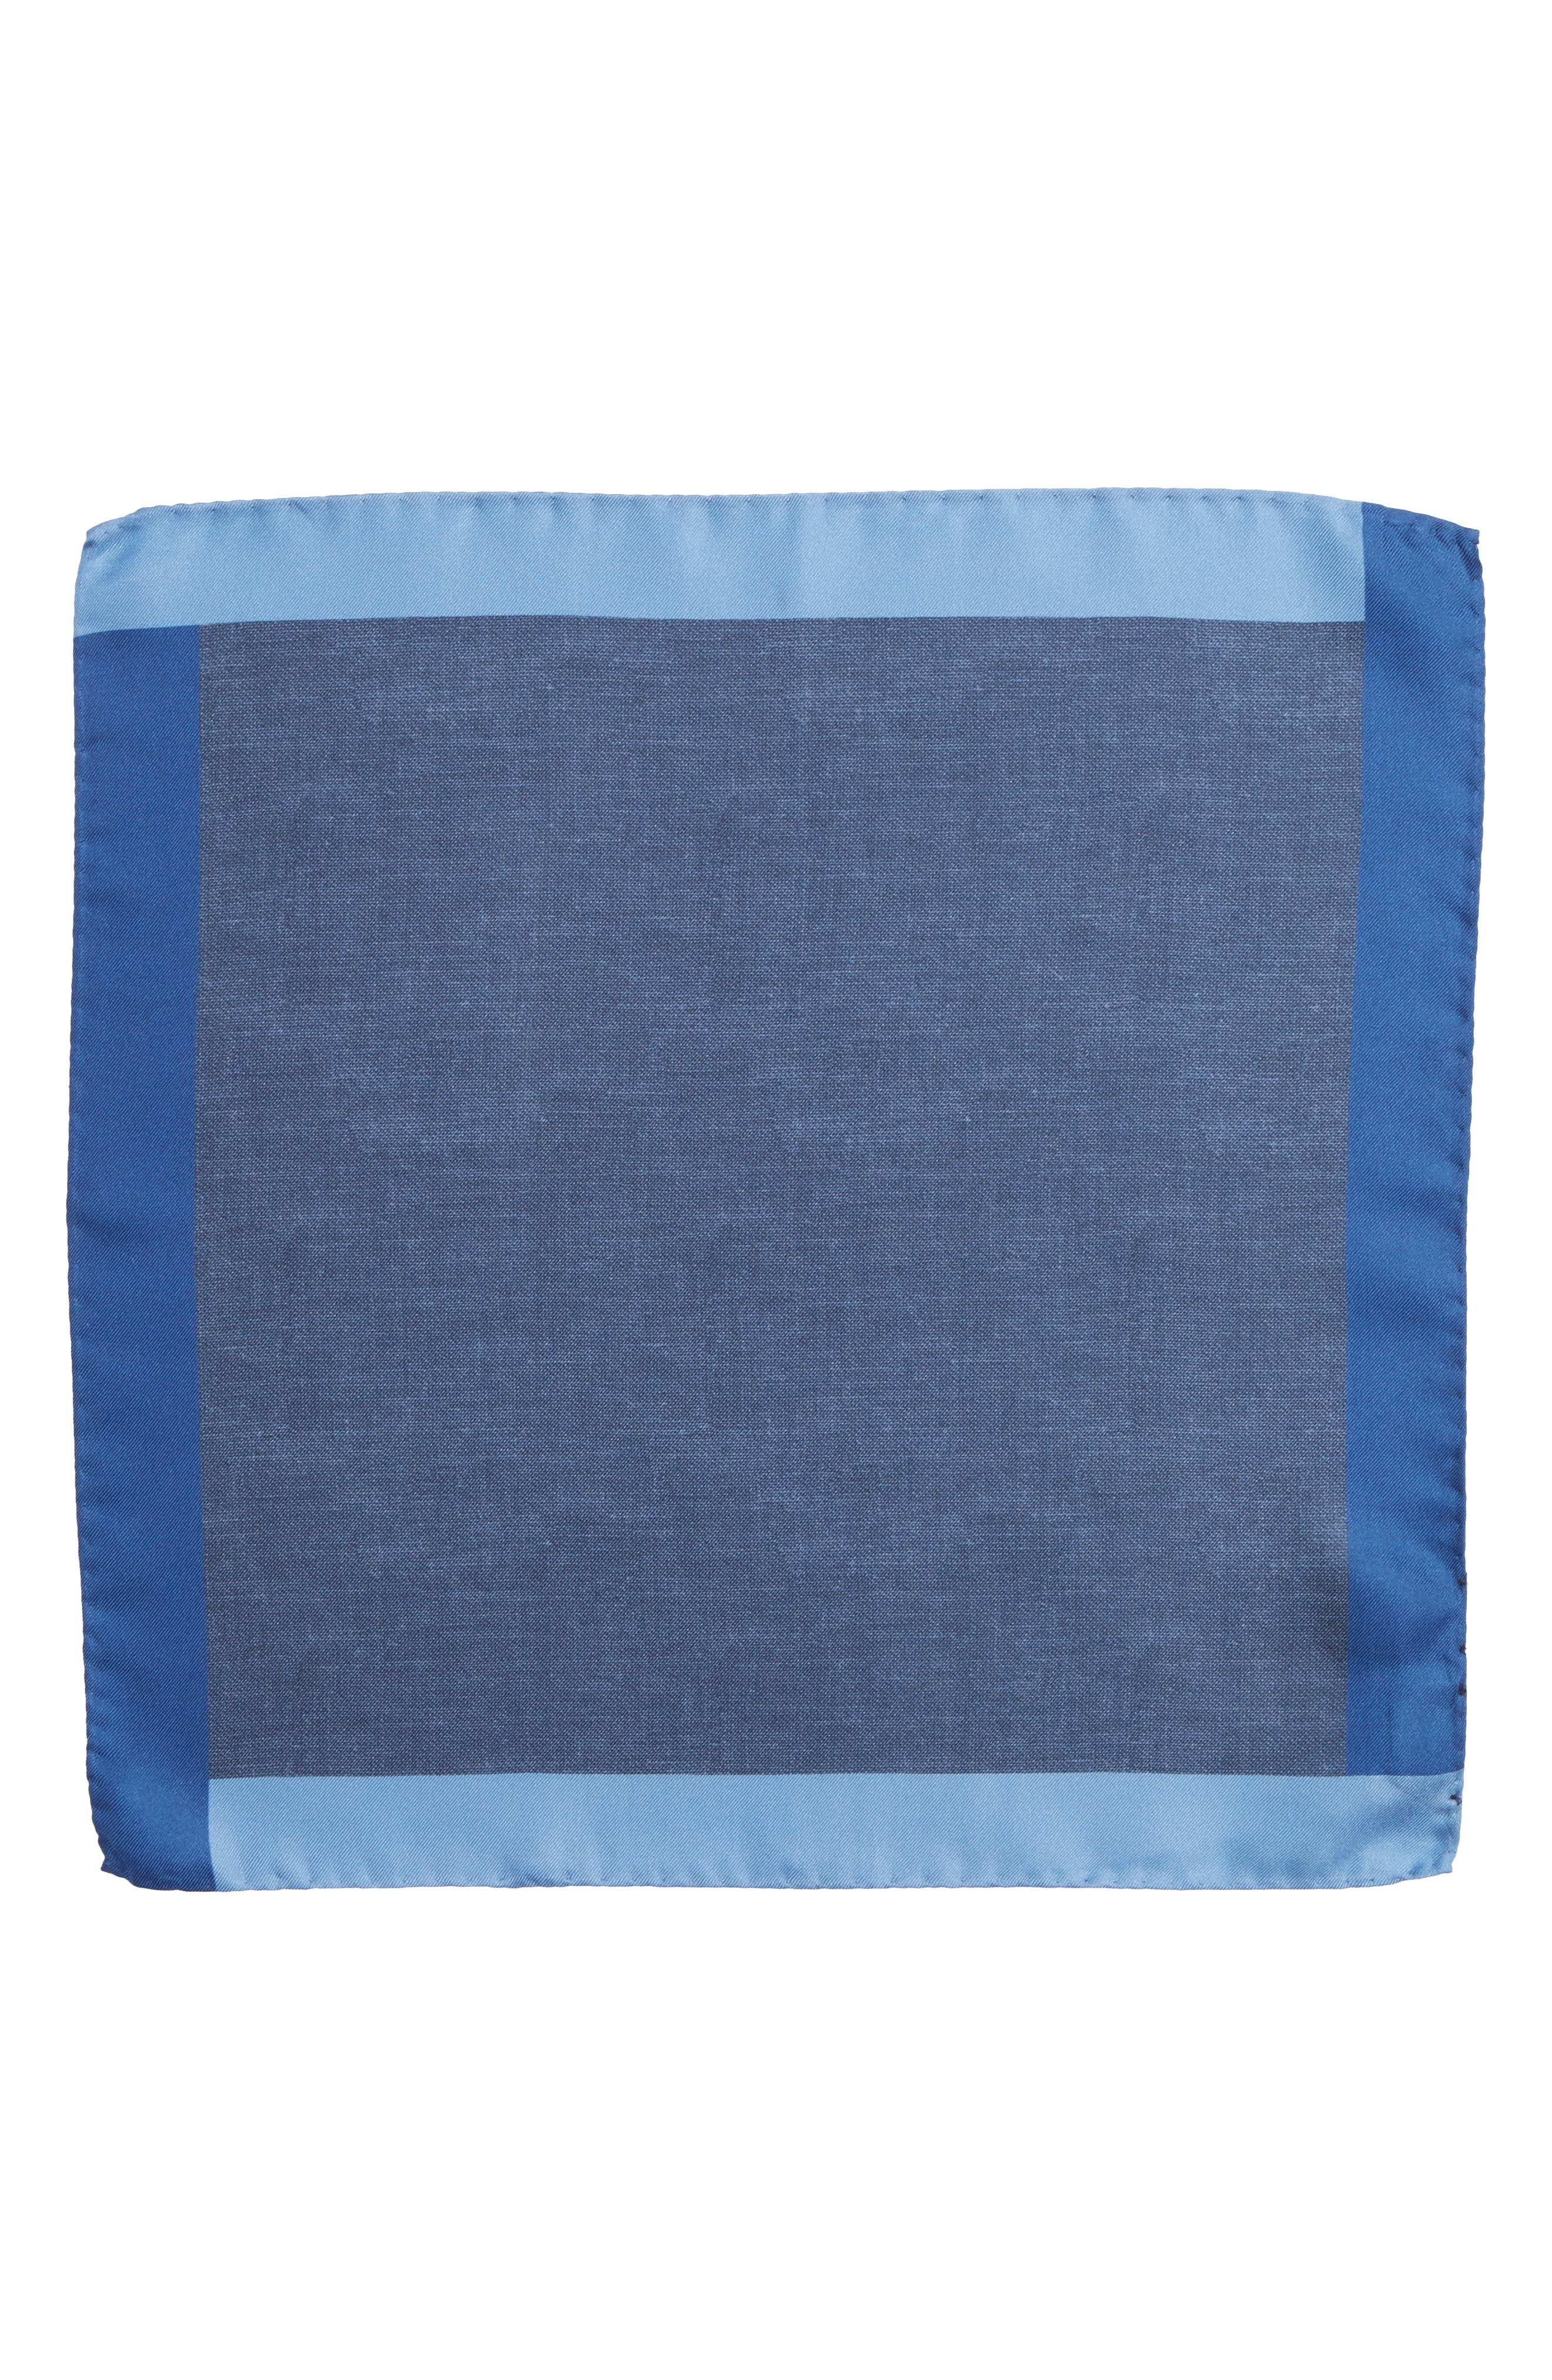 Nordstrom x BOSS Exclusive Silk Pocket Square,                             Alternate thumbnail 2, color,                             Blue